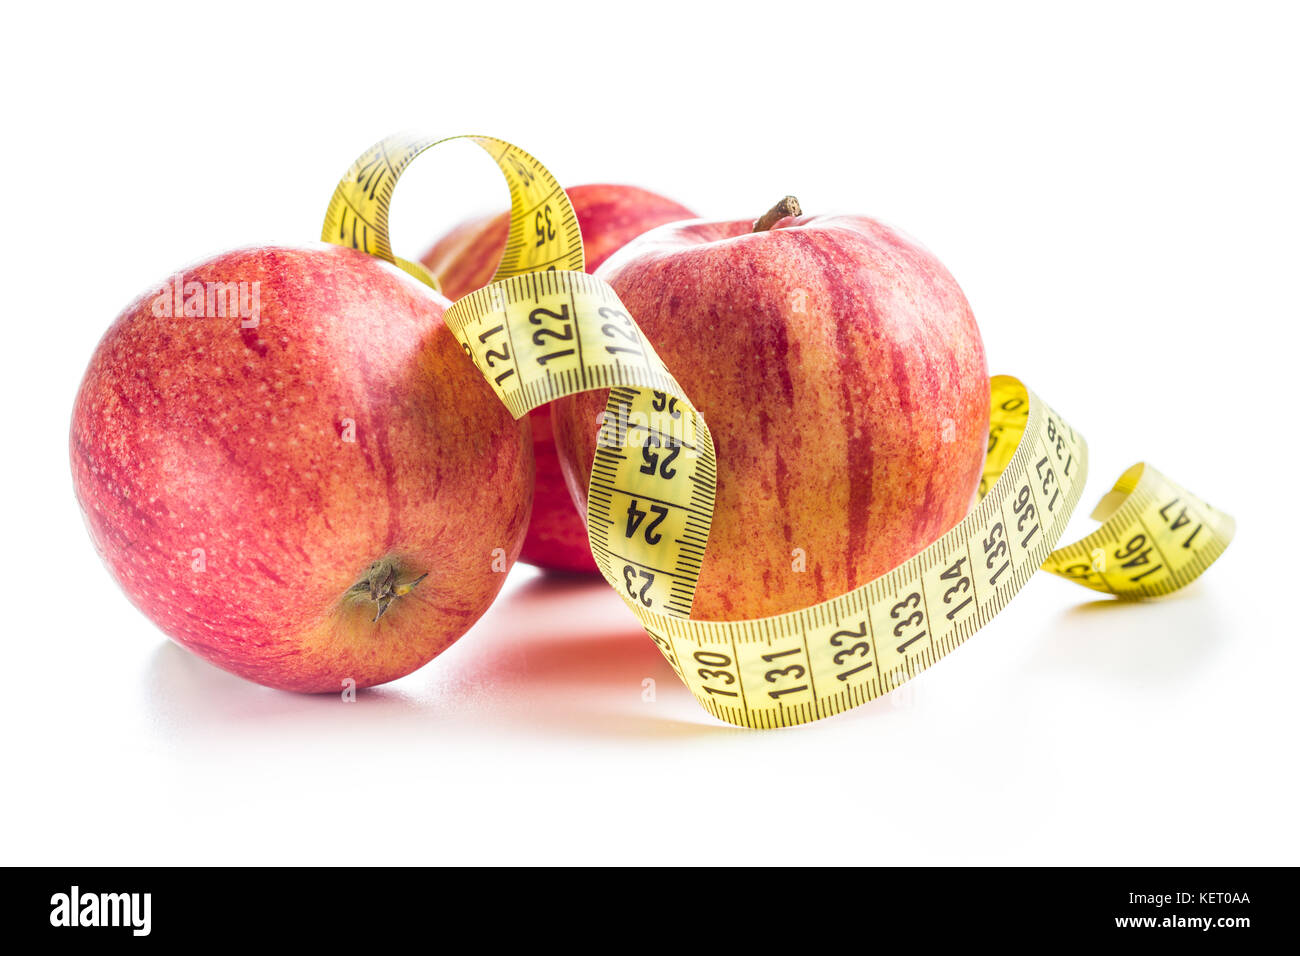 Fresh apples and measuring tape isolated on white background. - Stock Image